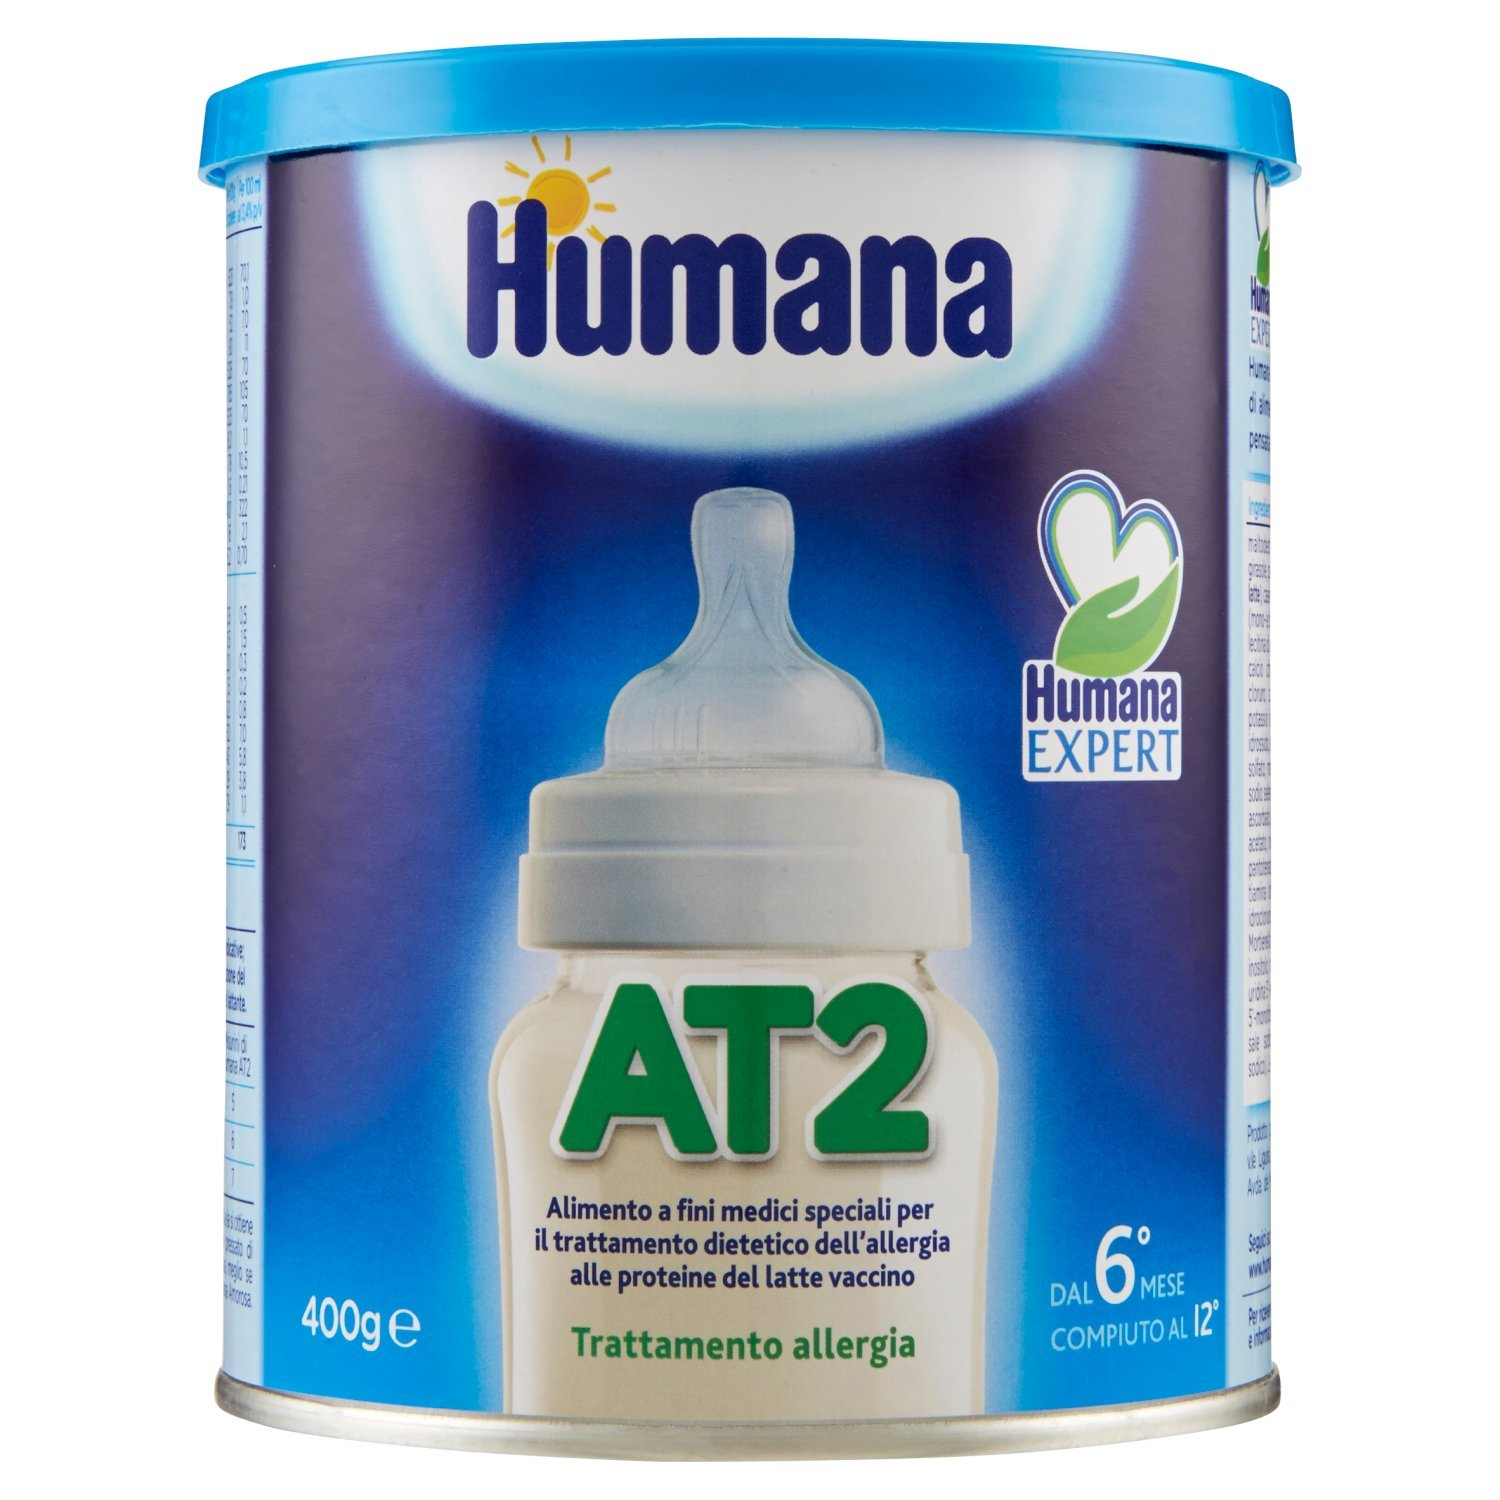 Amazon.com: Humana Humana AT1 Expert Allergy Treatment 400g: Health & Personal Care